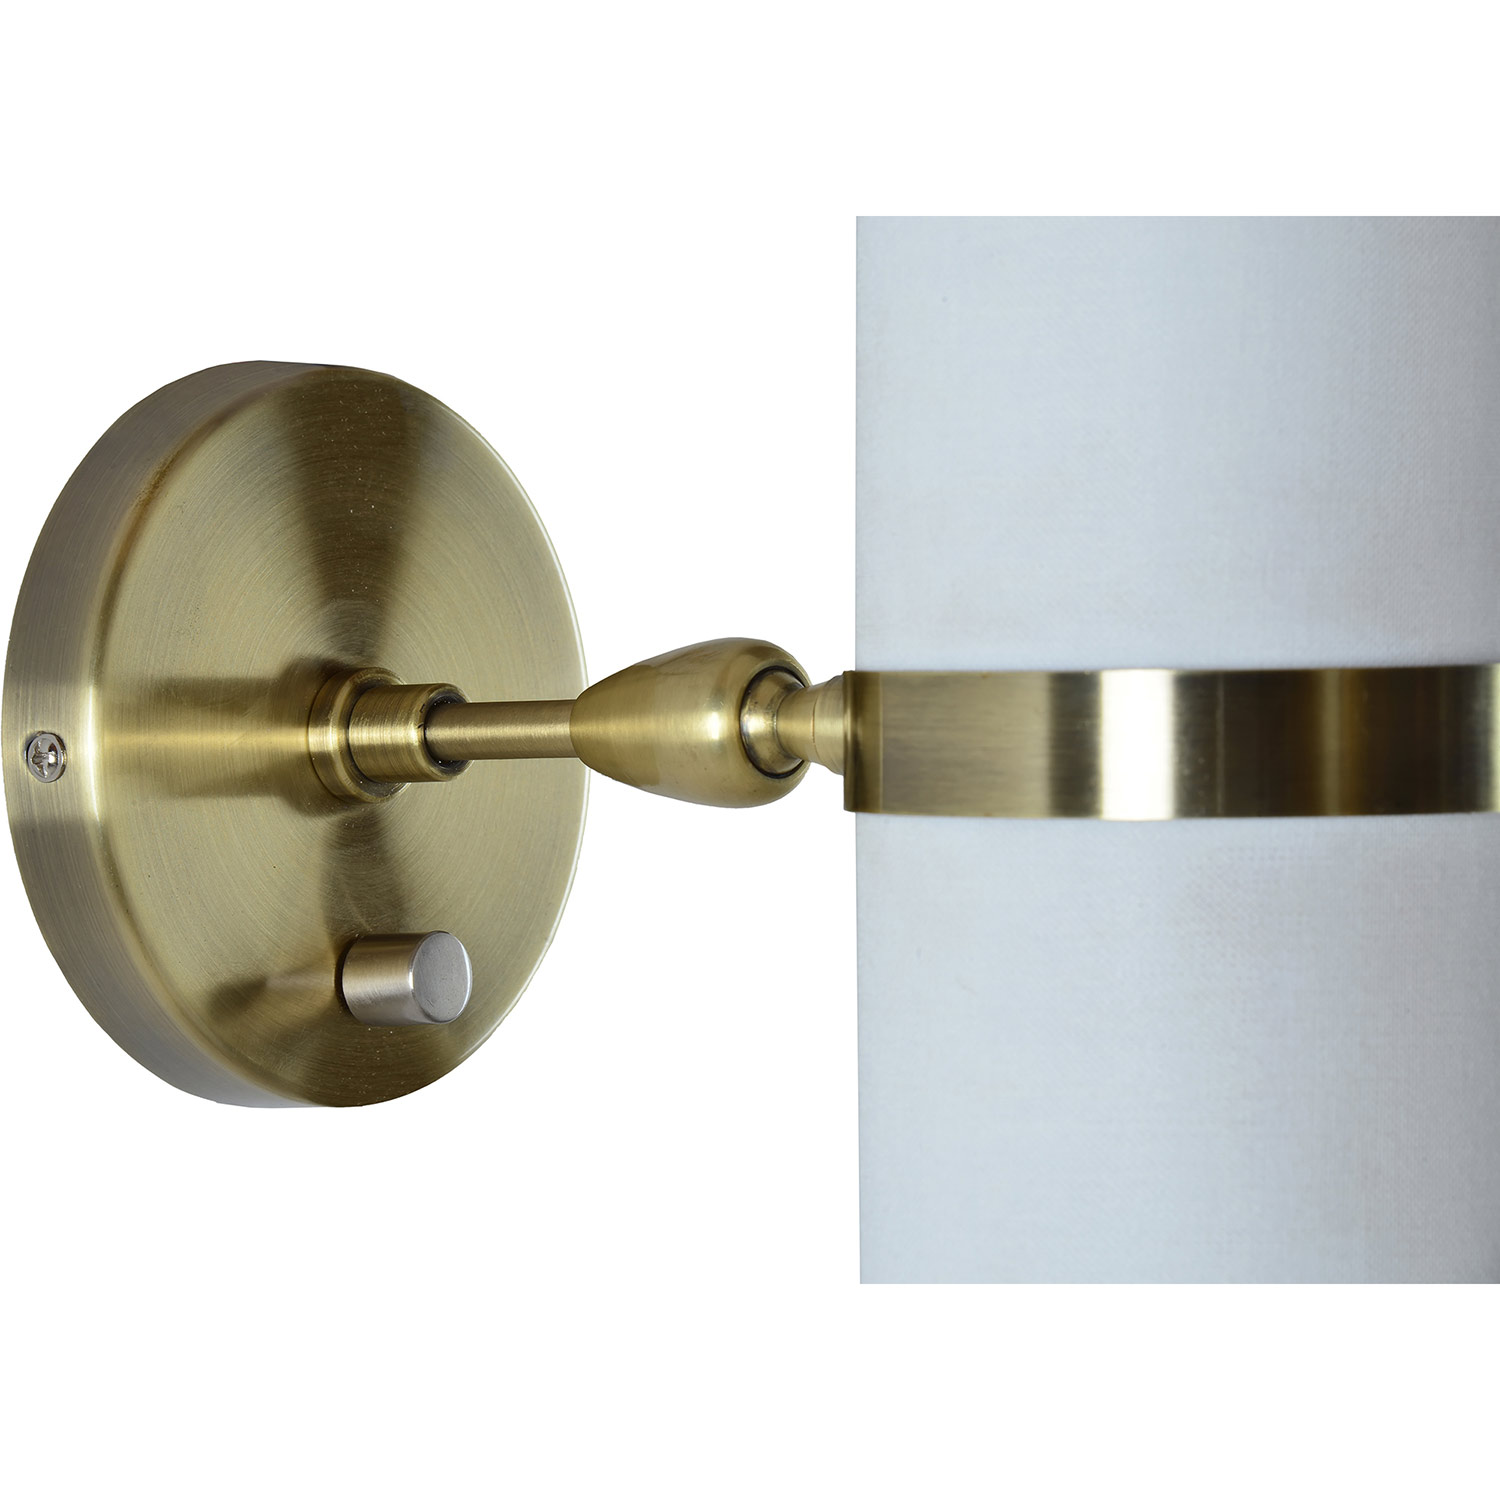 Ren-Wil Holtham Wall Sconce - Antique Brass